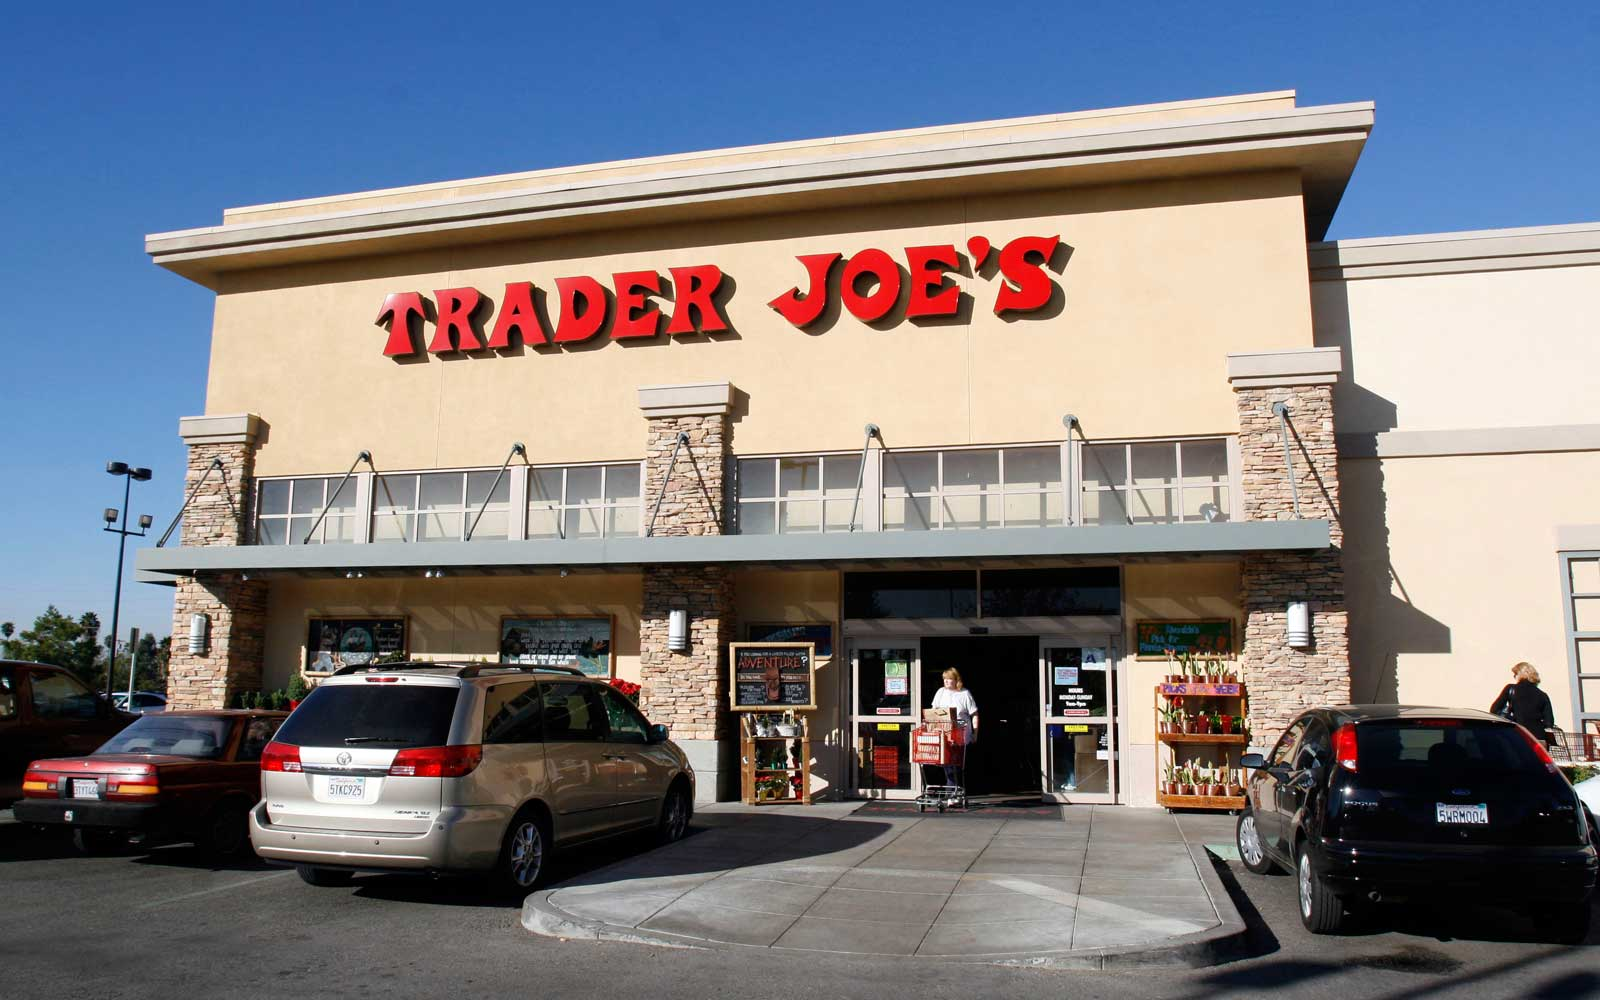 The Best Time of Day to Shop at Trader Joe's, According to a Manager